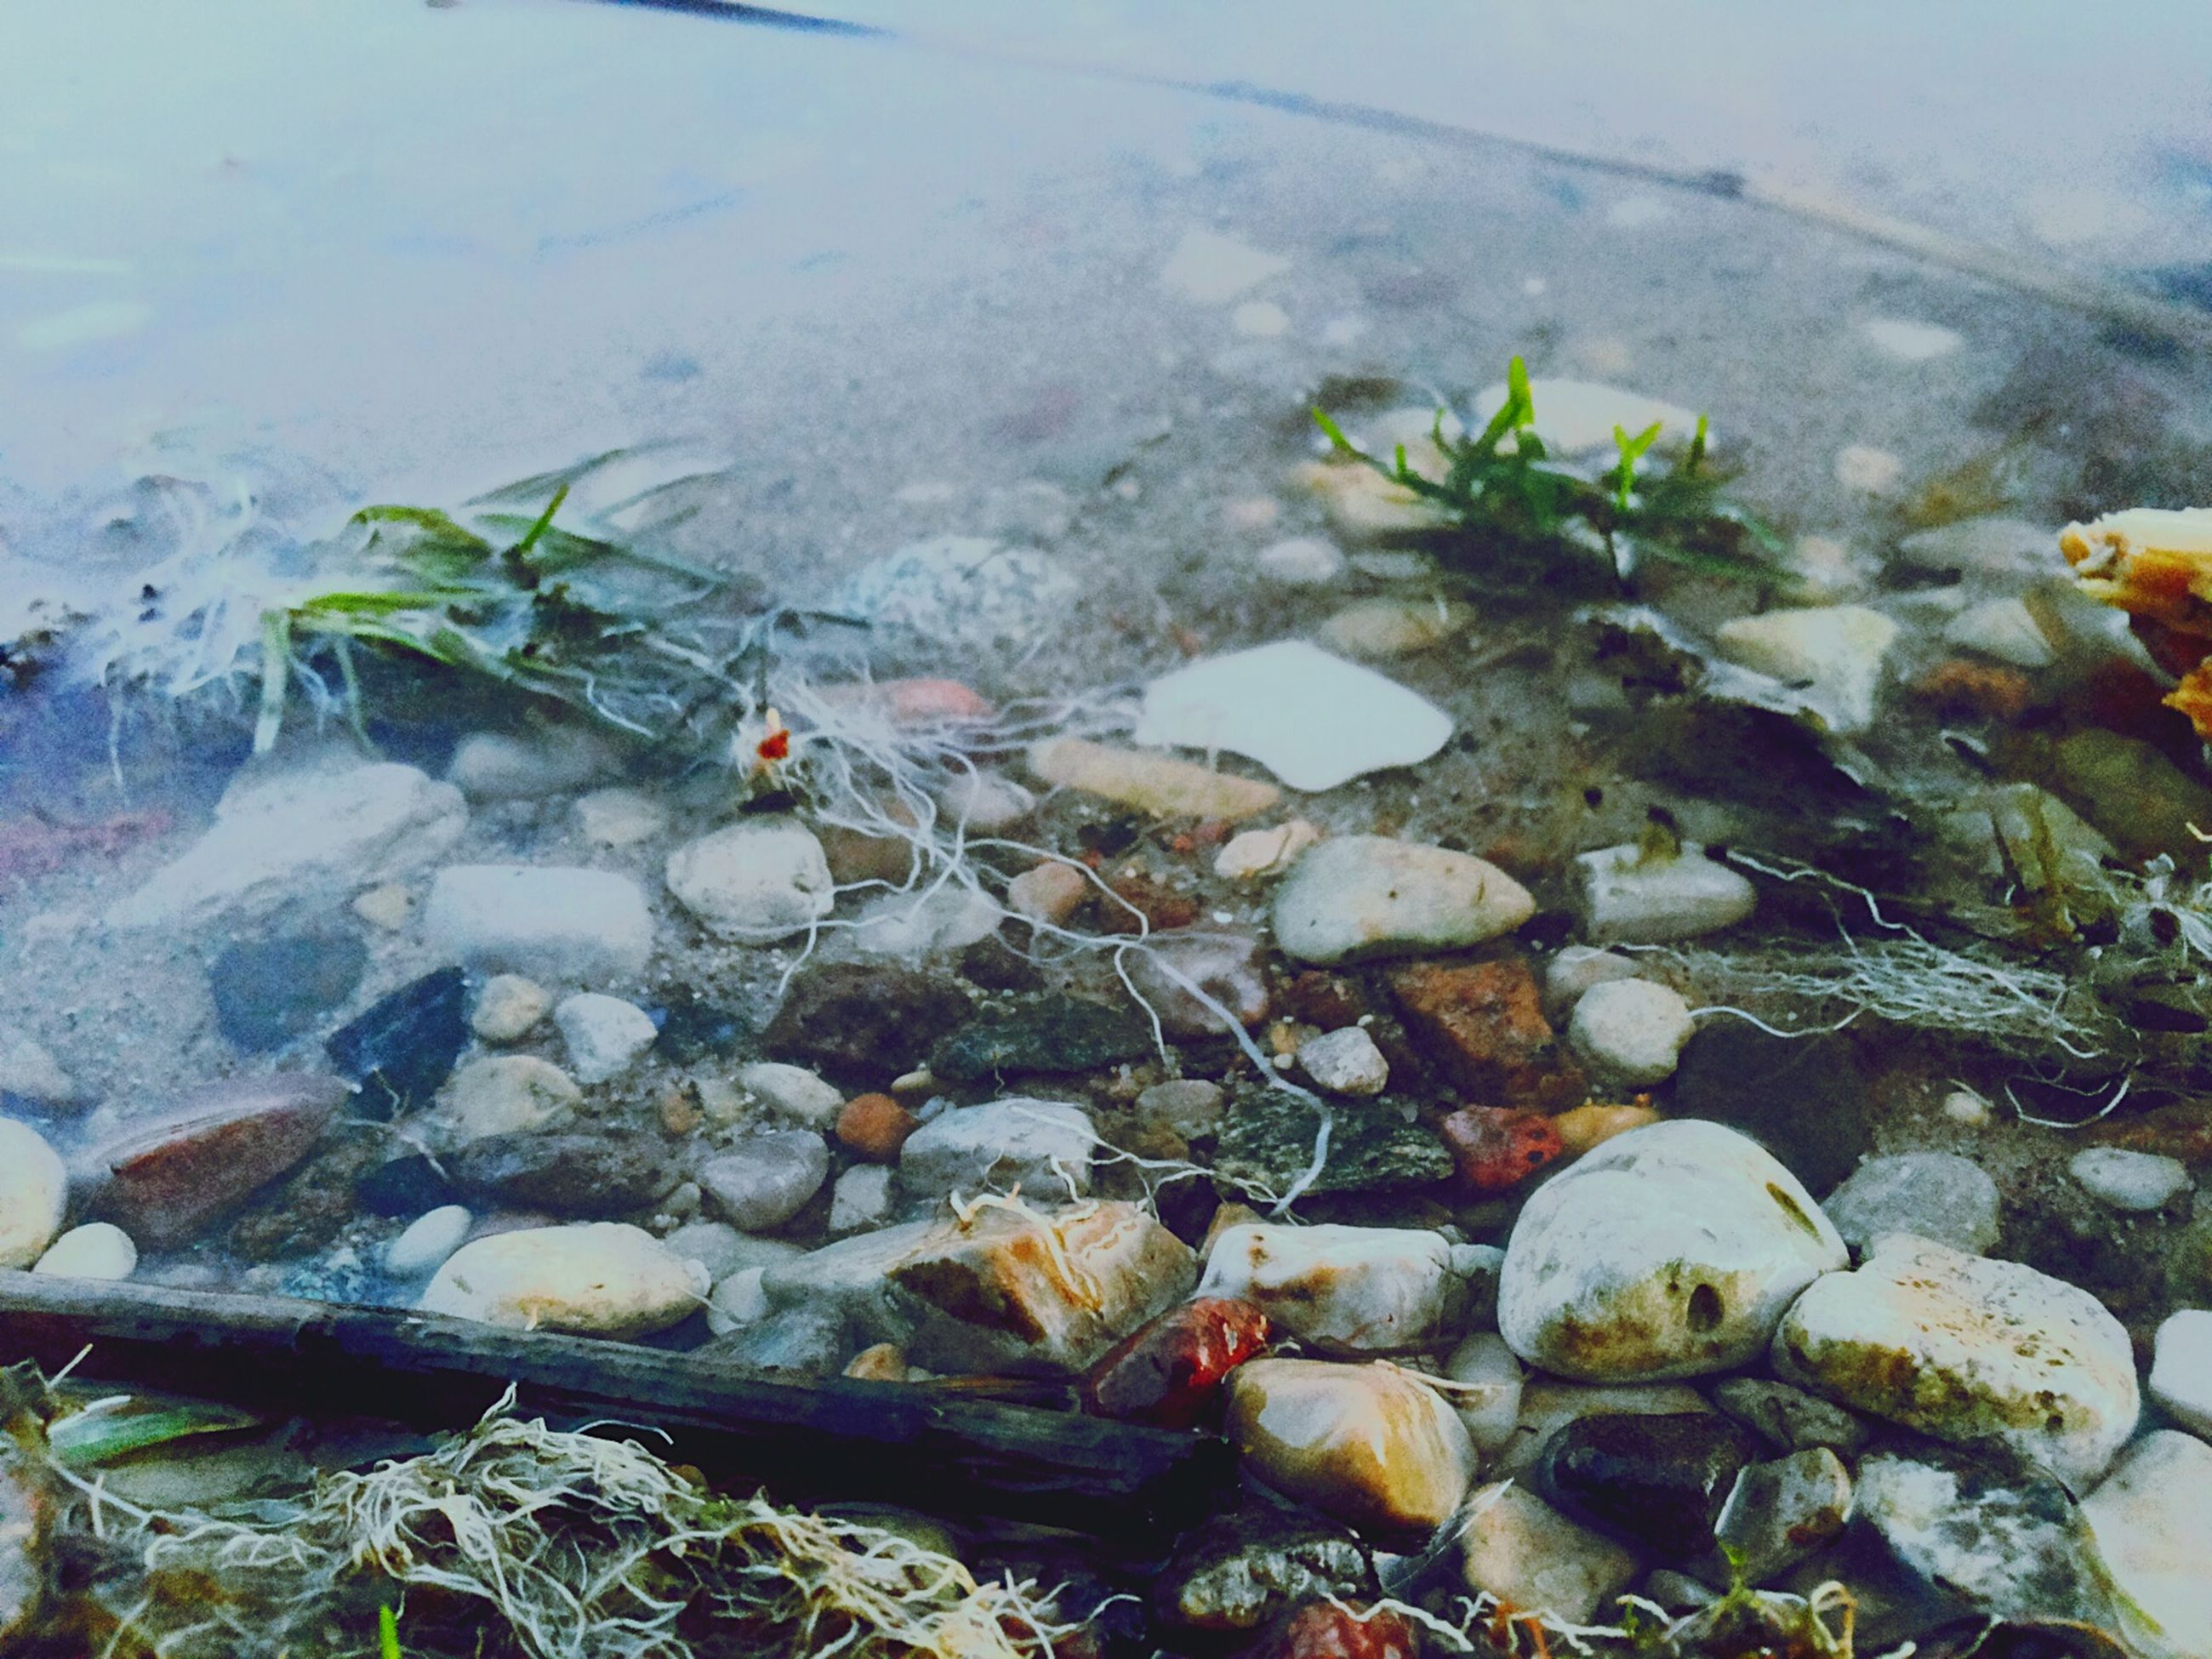 water, high angle view, nature, rock - object, plant, stone - object, tranquility, beauty in nature, leaf, day, outdoors, growth, no people, stream, pond, lake, rock, abundance, river, floating on water